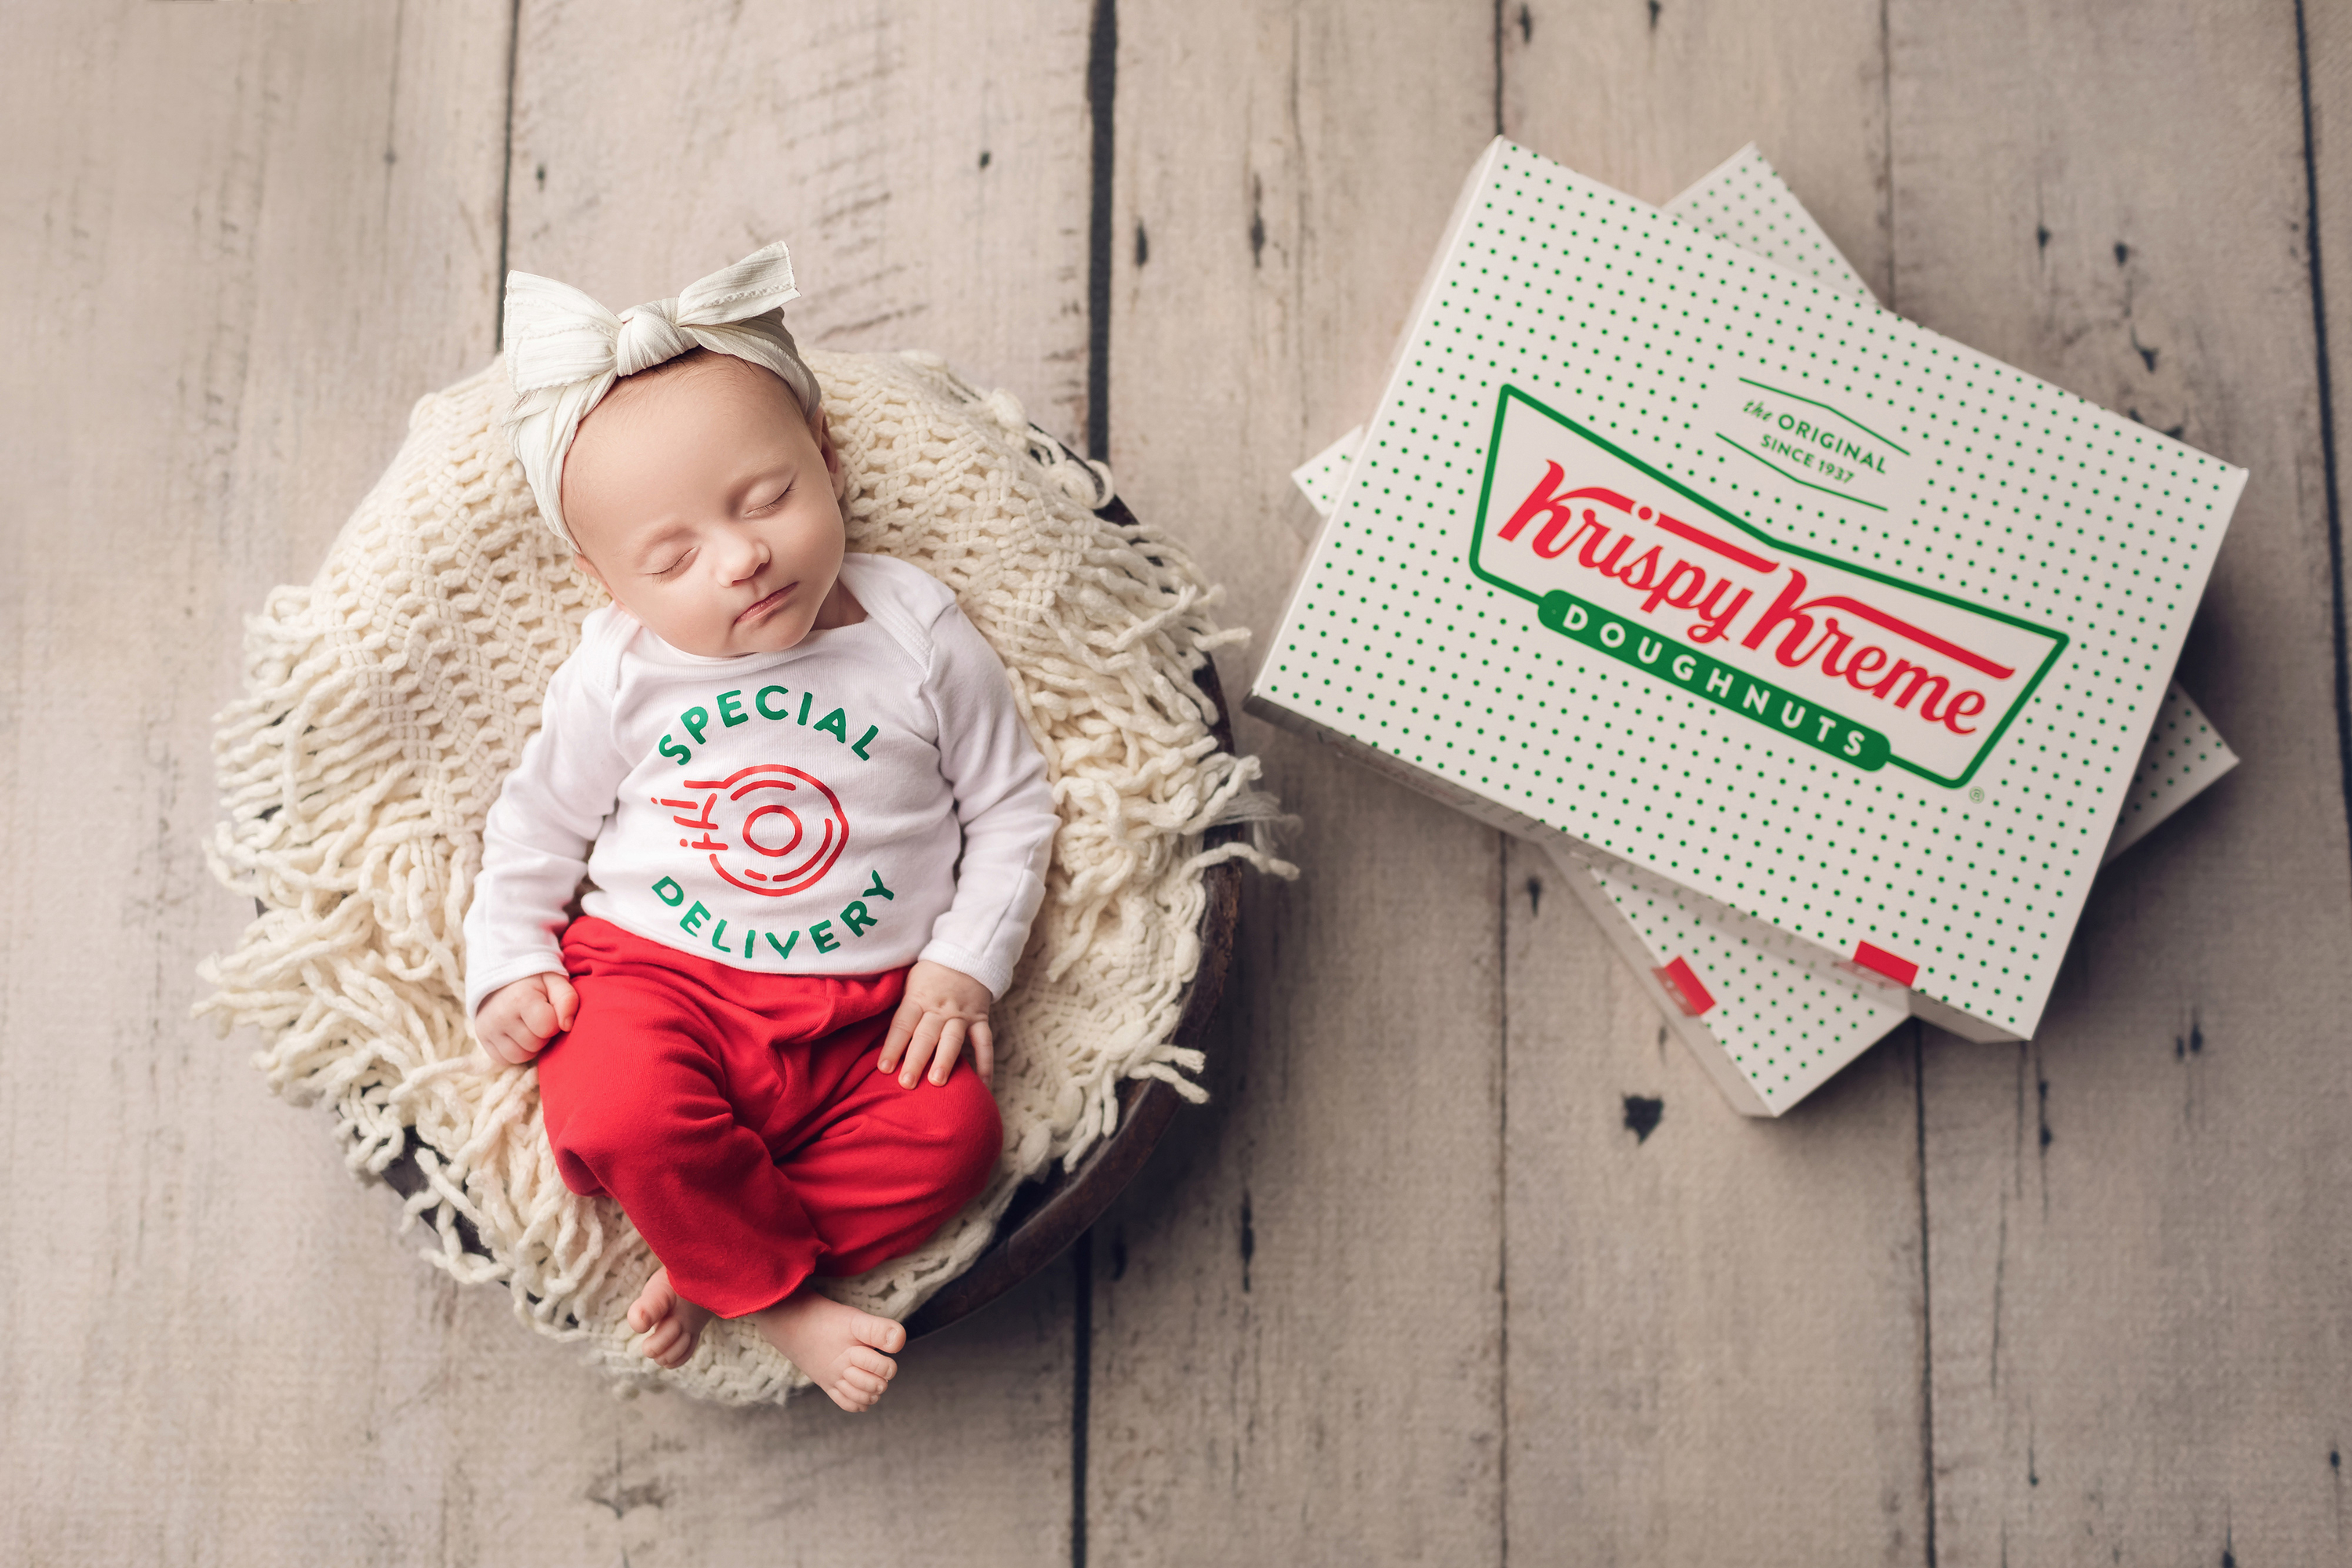 Krispy Kreme promotes delivery with free doughnuts for those delivering Leap Day babies